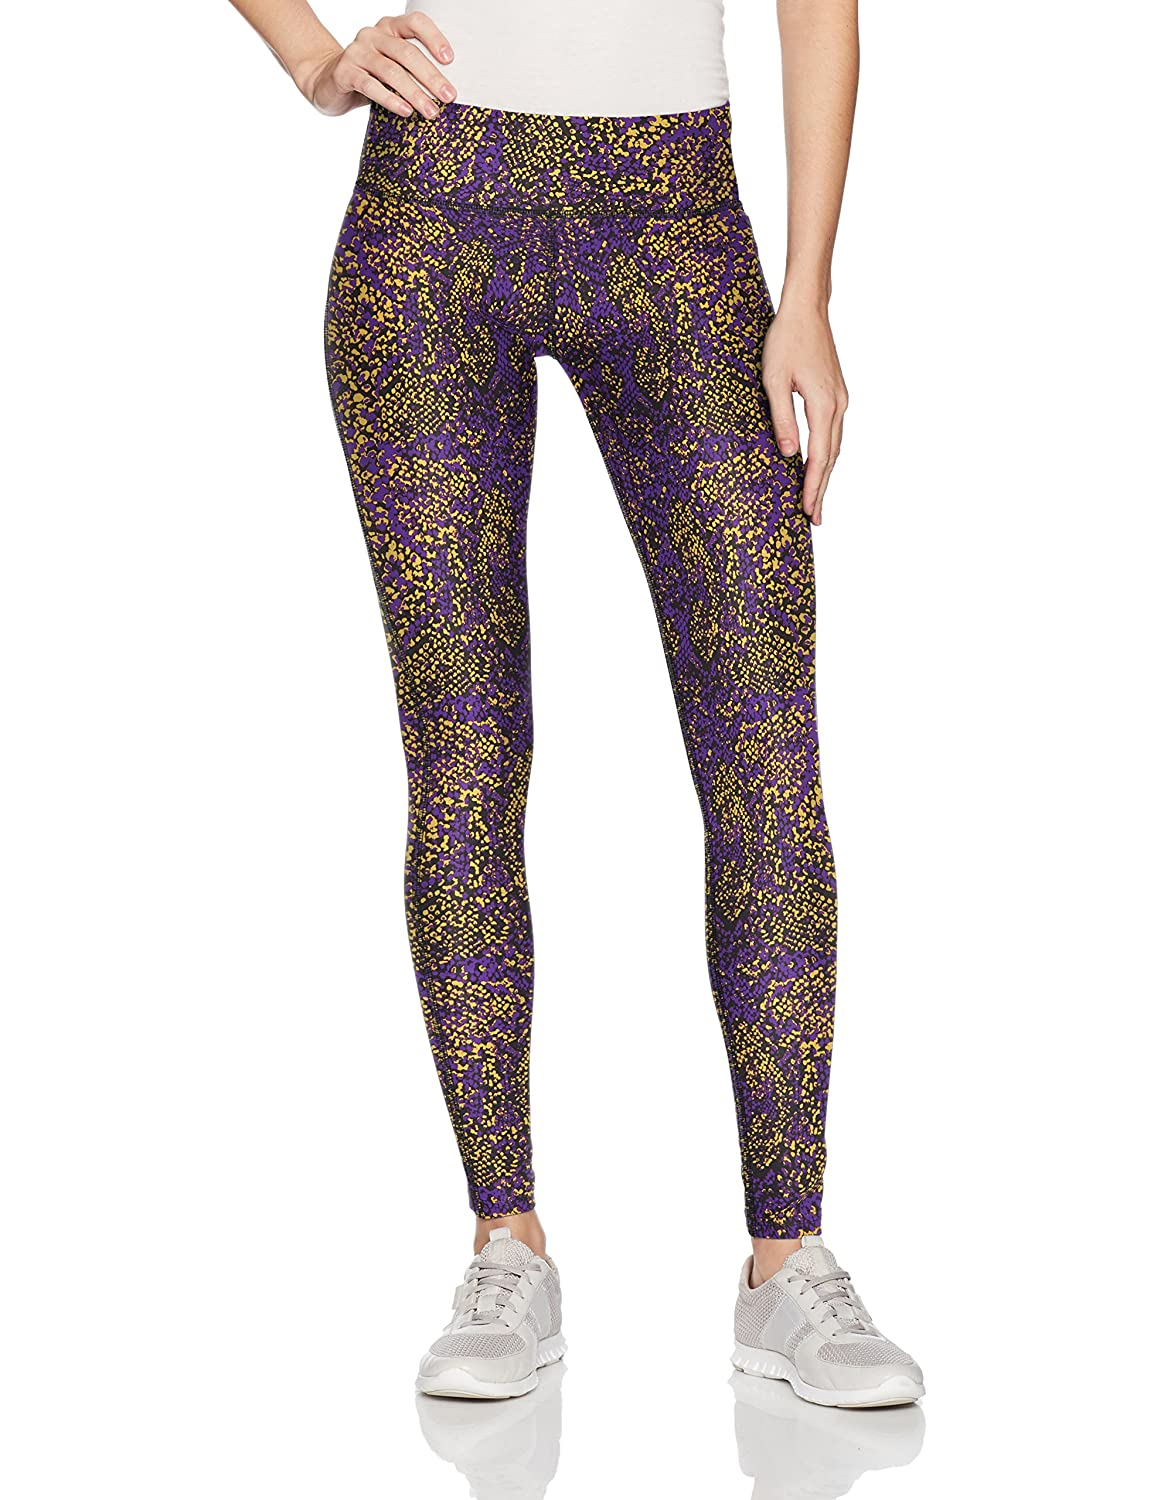 Purple gold black Zubaz Women's Casual Printed Athletic Lounge Leggings